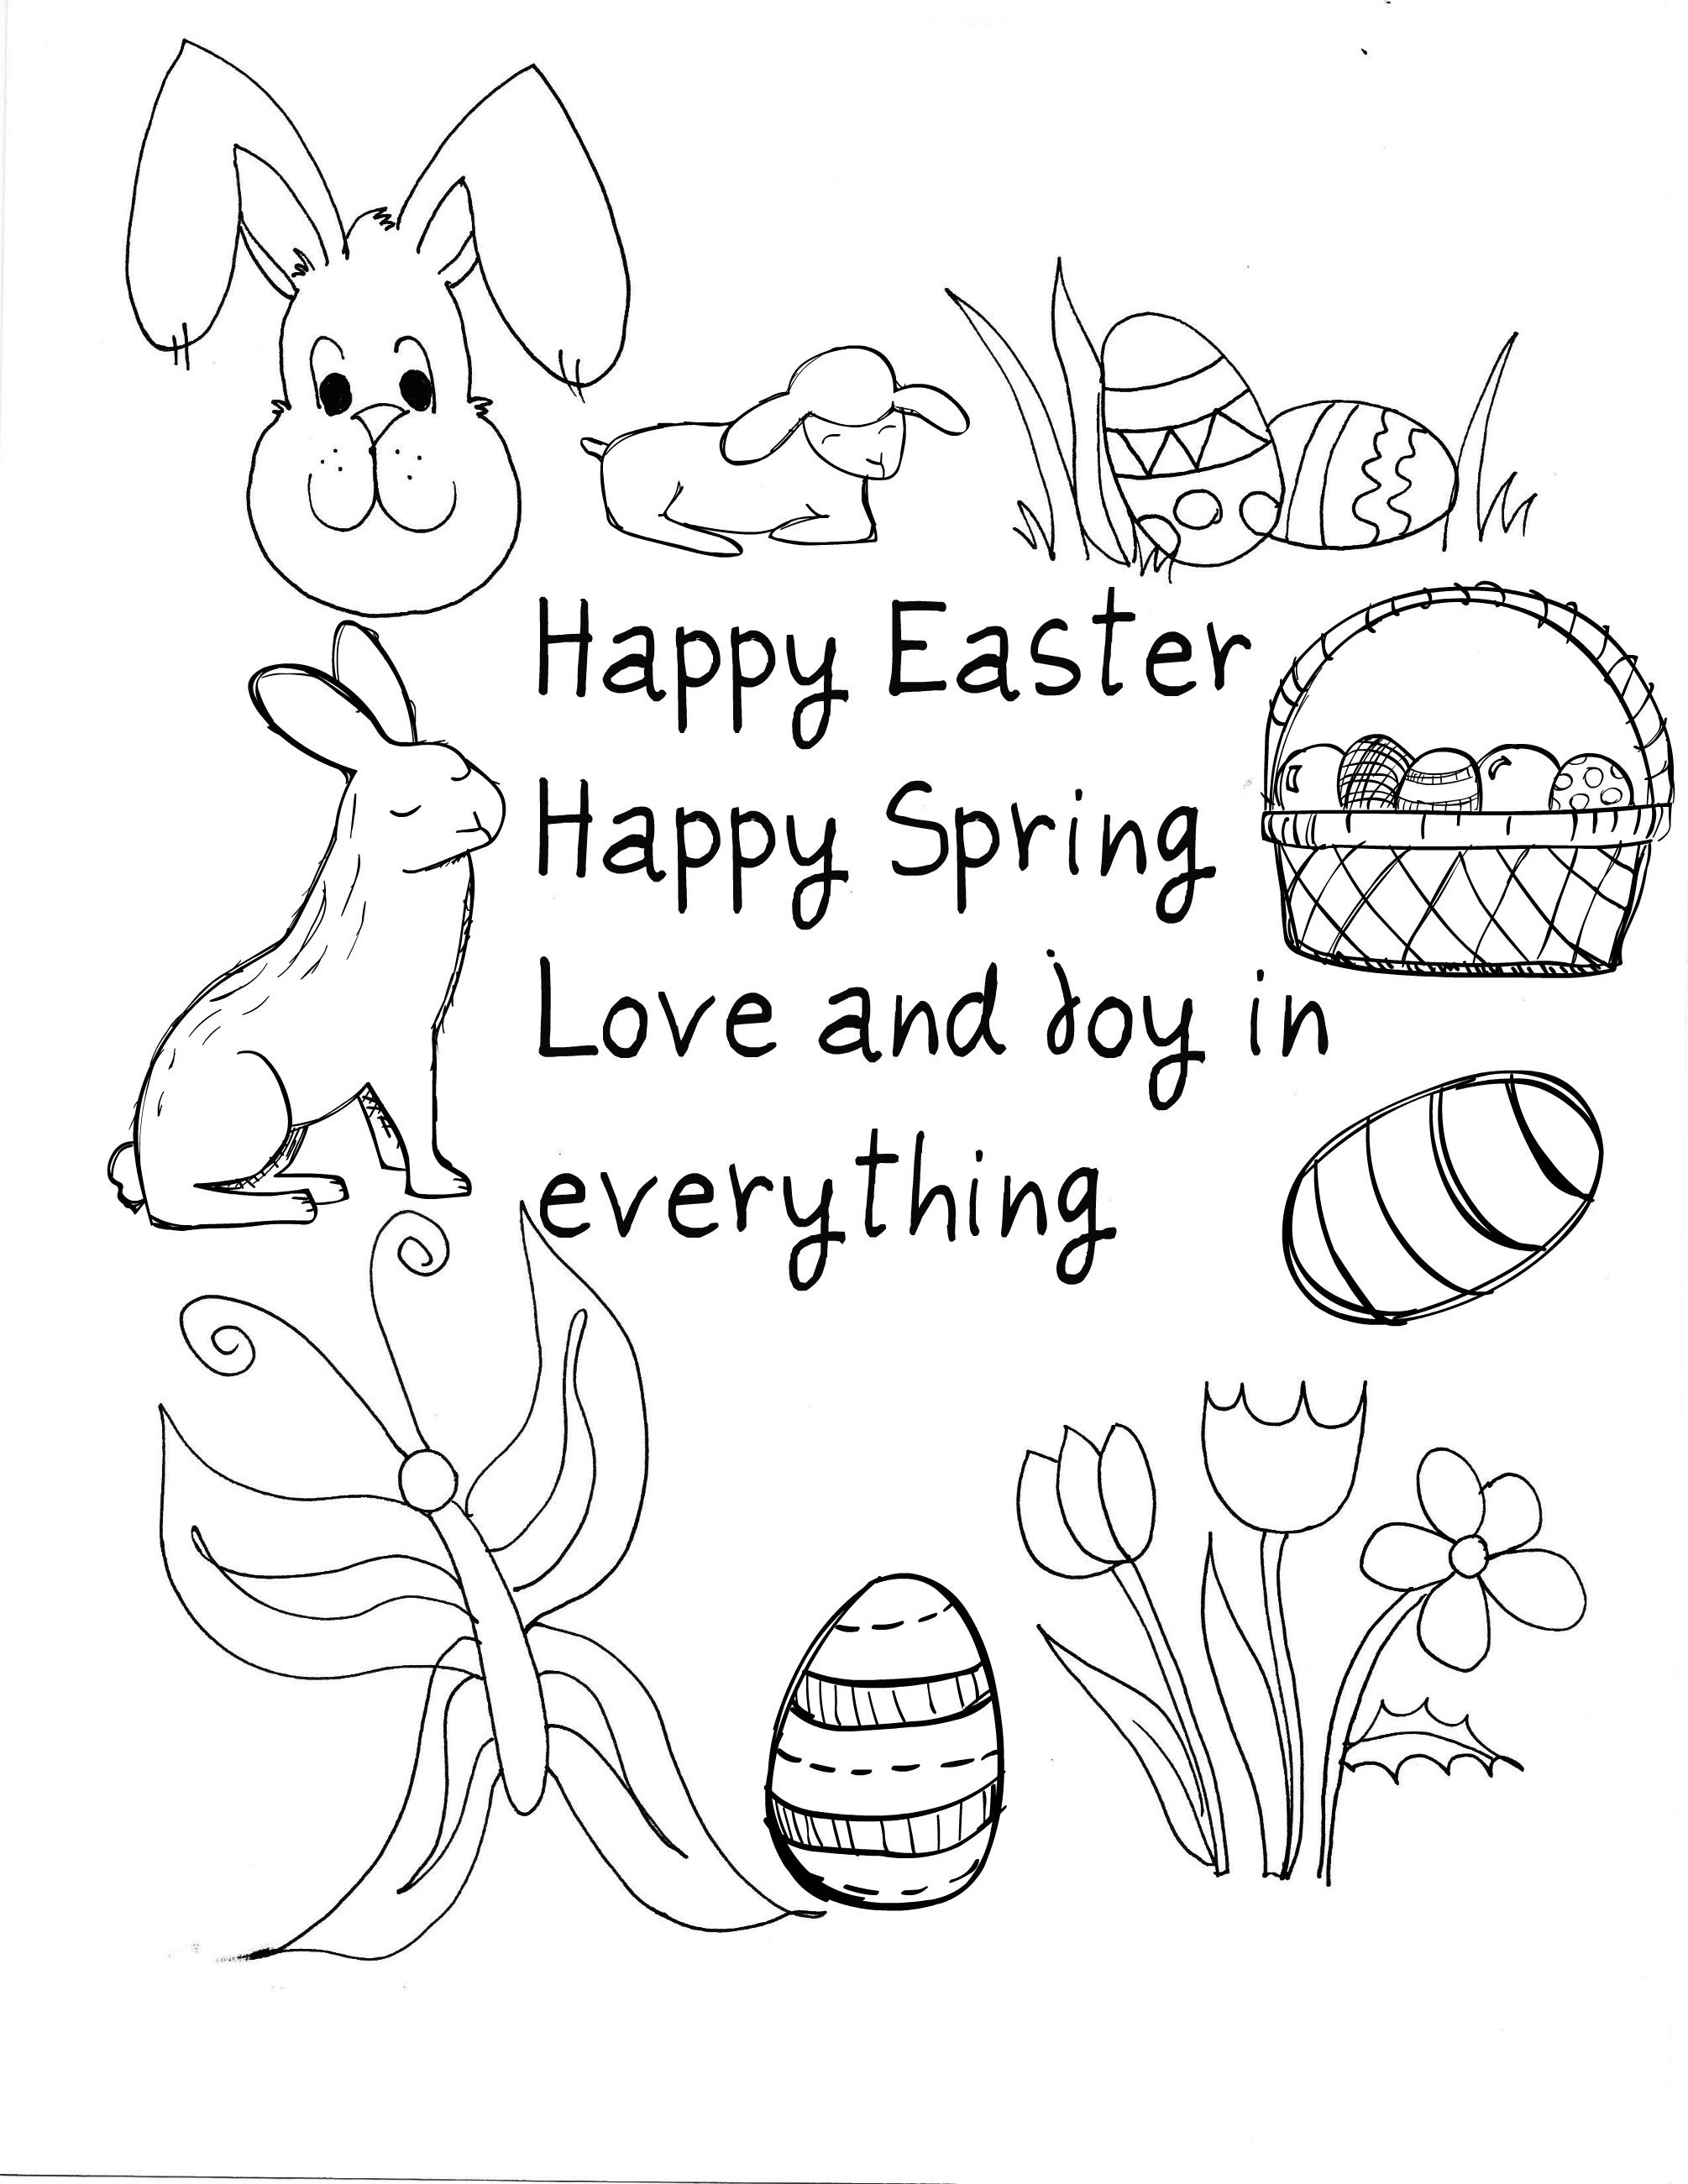 38 Happy Easter Coloring Page Happy Easter Wishes Free Coloring Download Of Easter Coloring Pages for Kids Crazy Little Projects Printable